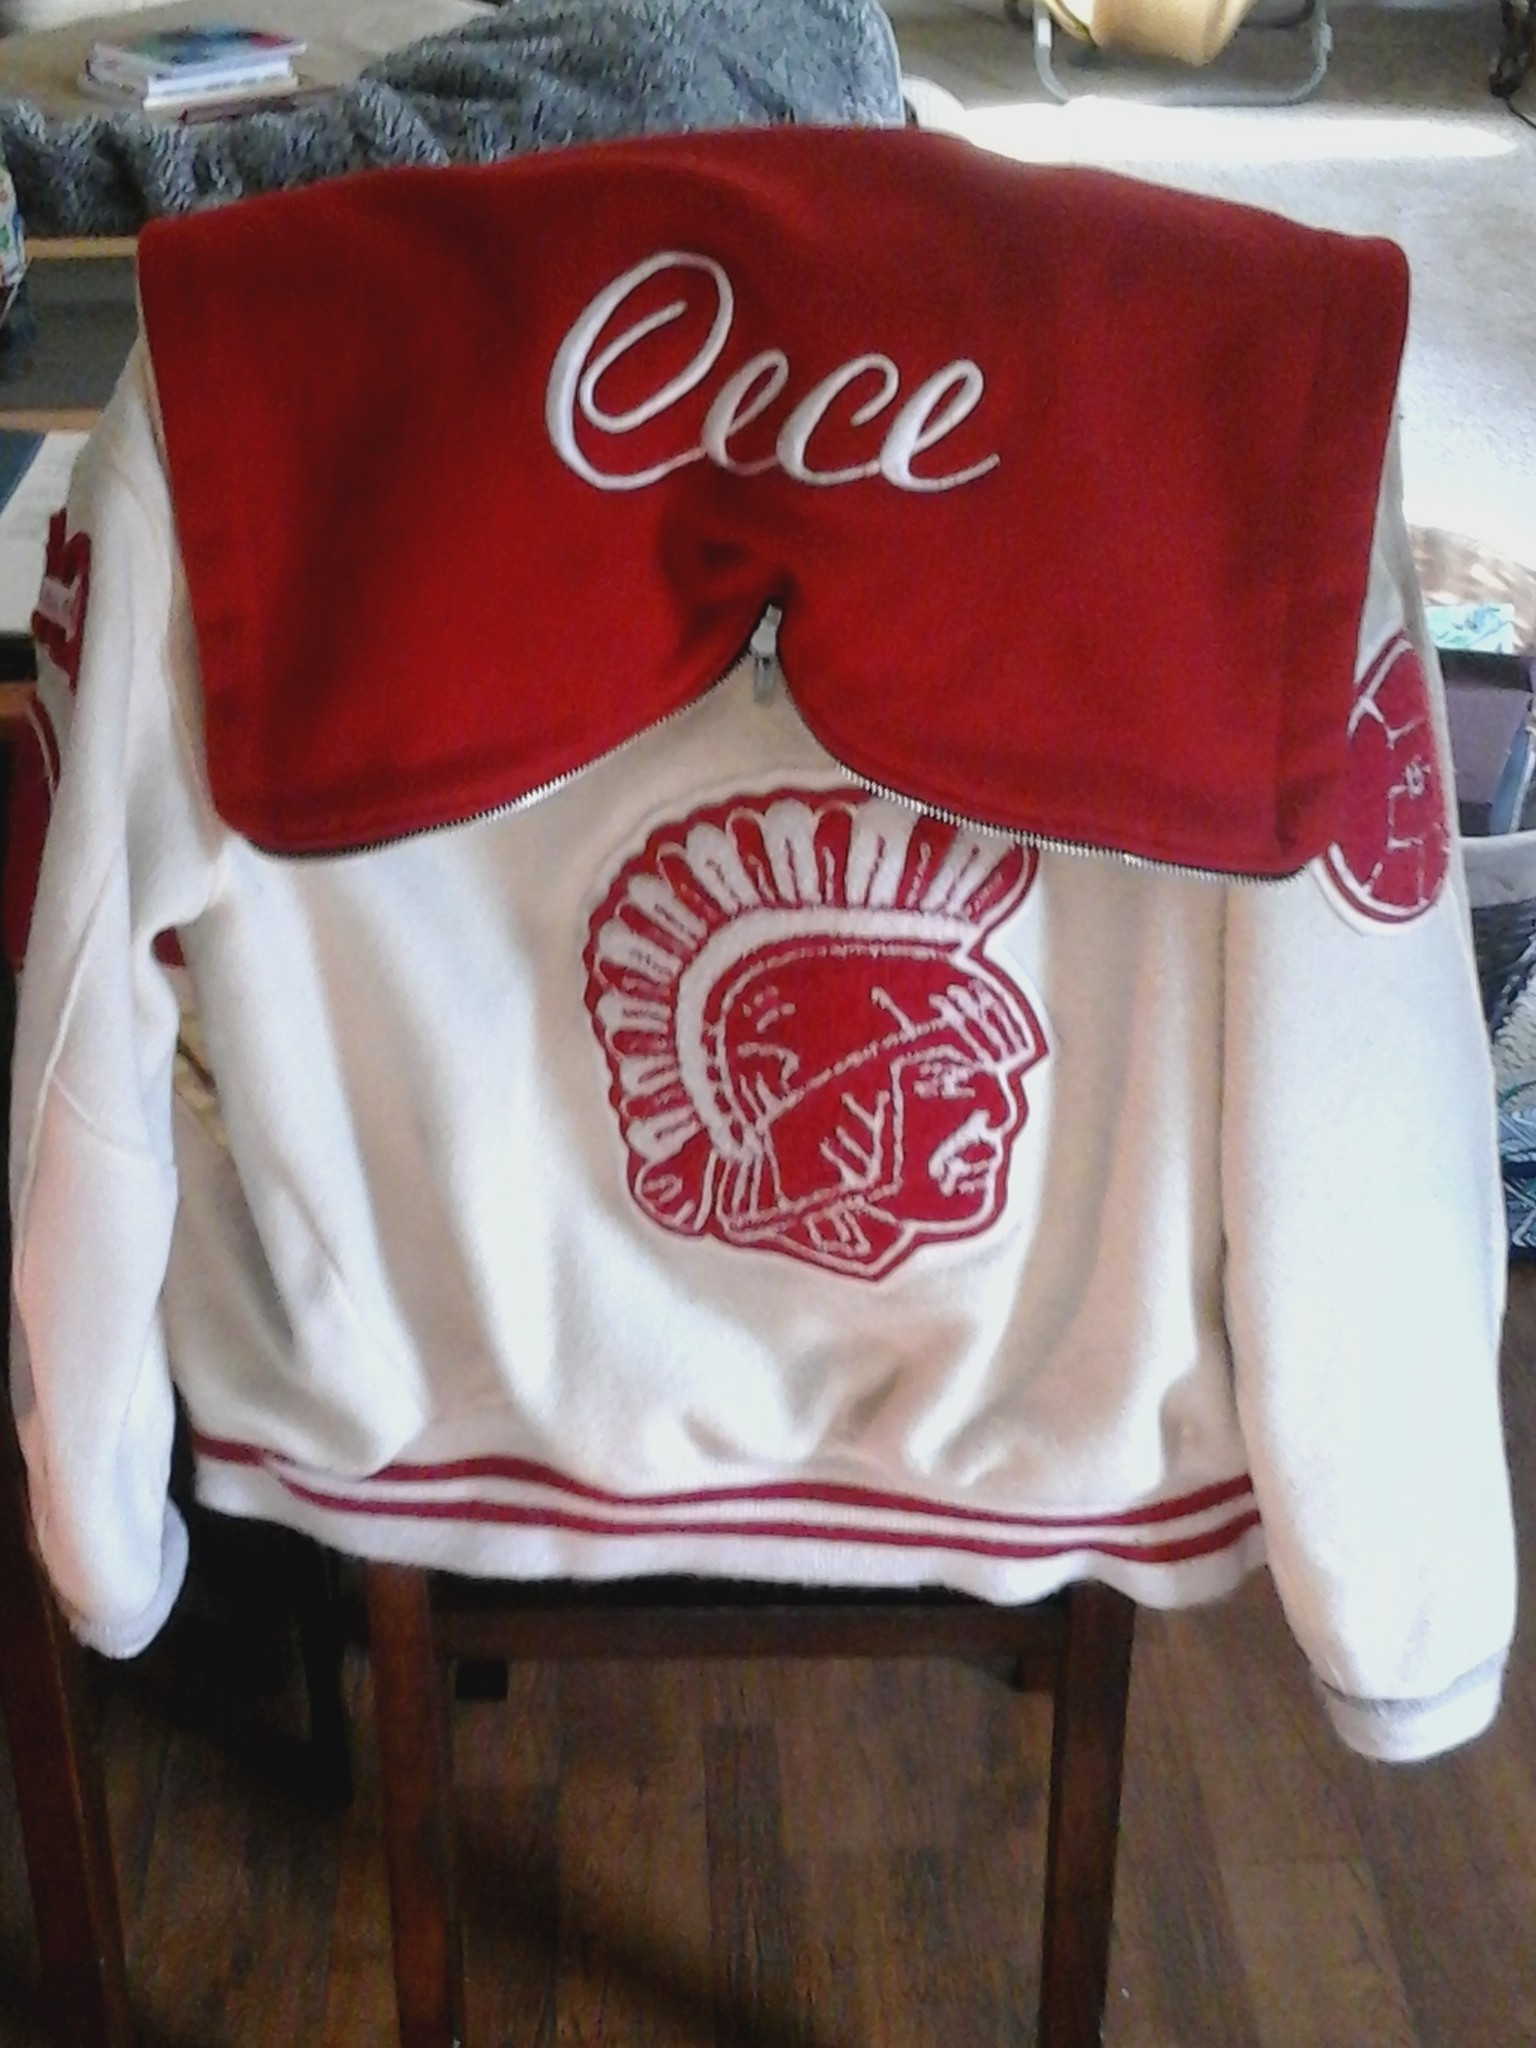 My high school letterman jacket... this is my 2004 jacket from the national honors student and math club volleyball and tennis club member.... I went by the name Cece then it was an incredible nickname...